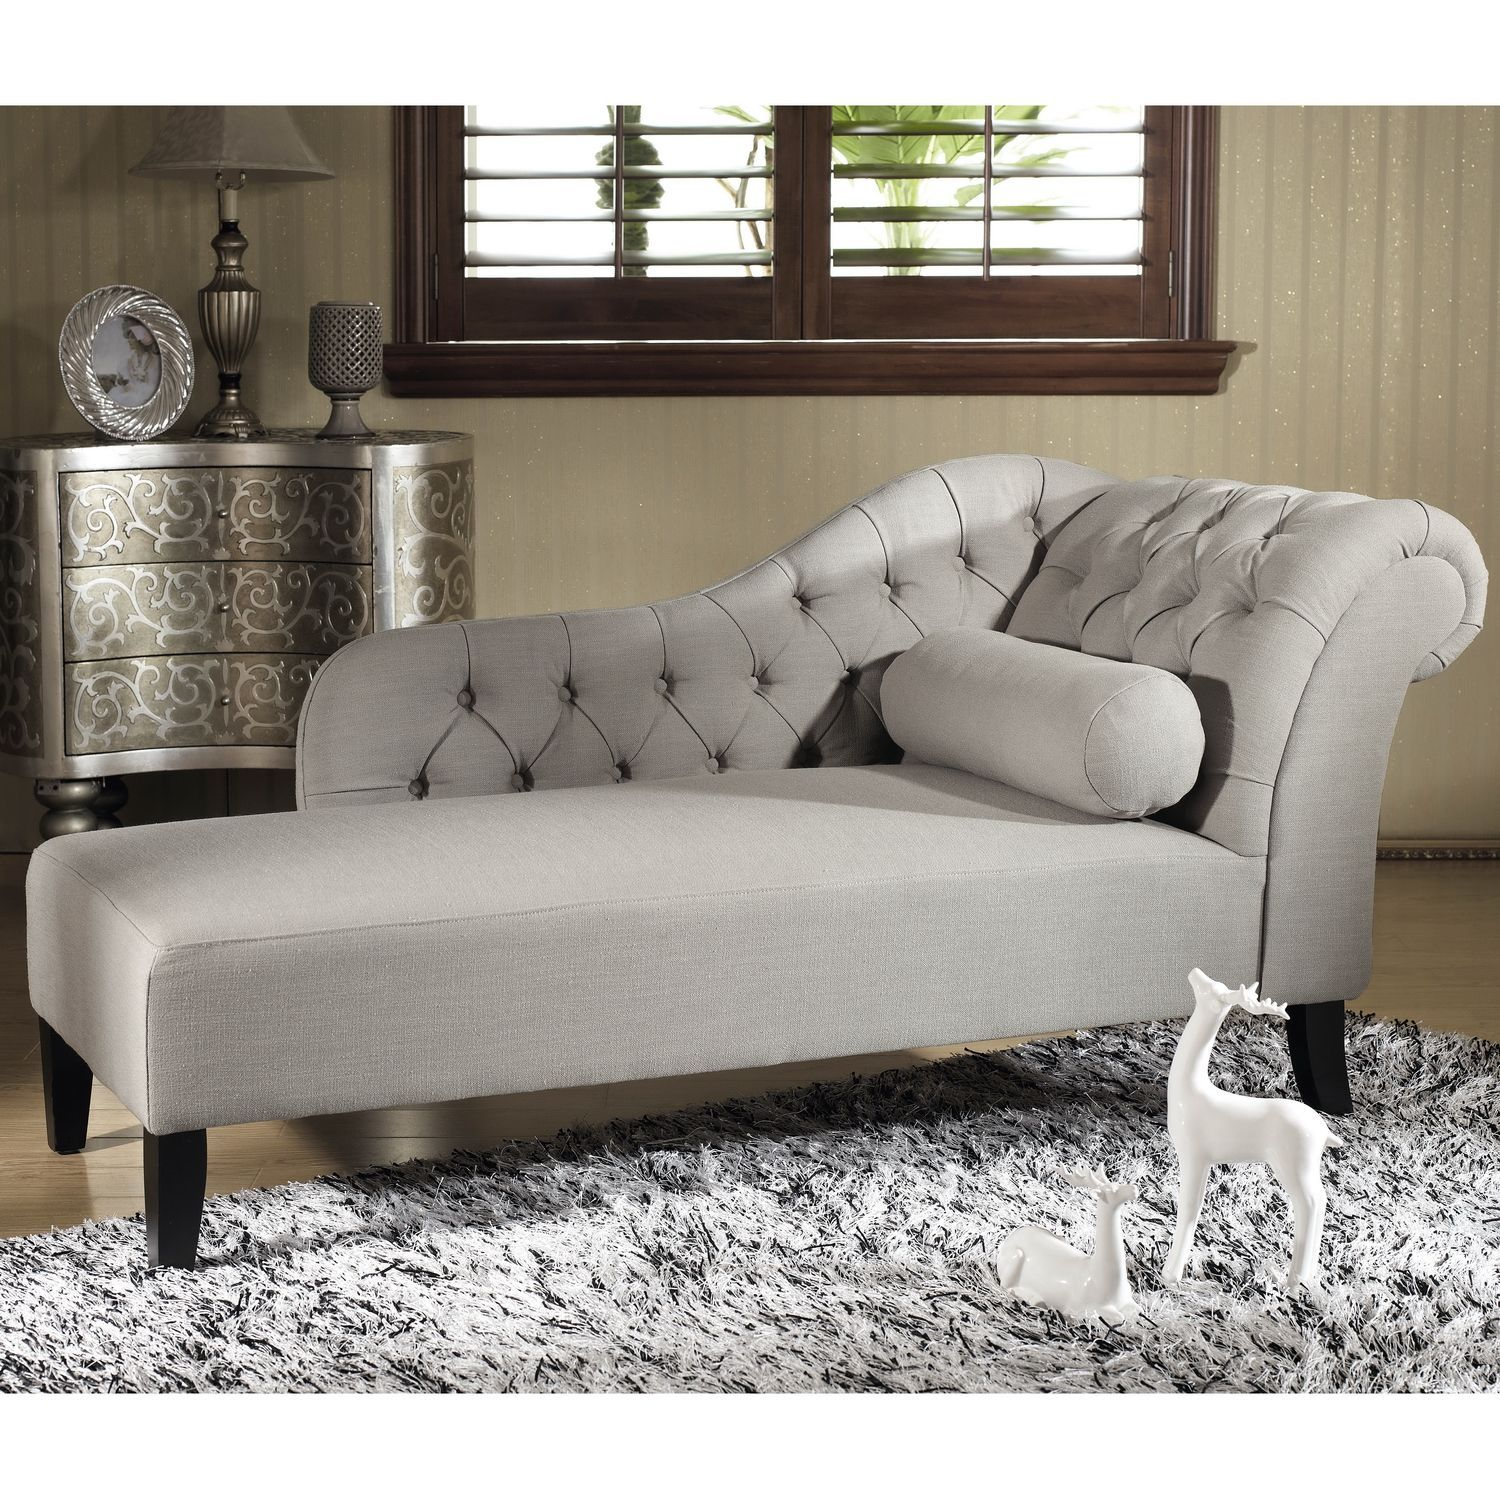 Baxton Studio \'Aphrodite\' Tufted Putty Gray Linen Modern Chaise ...